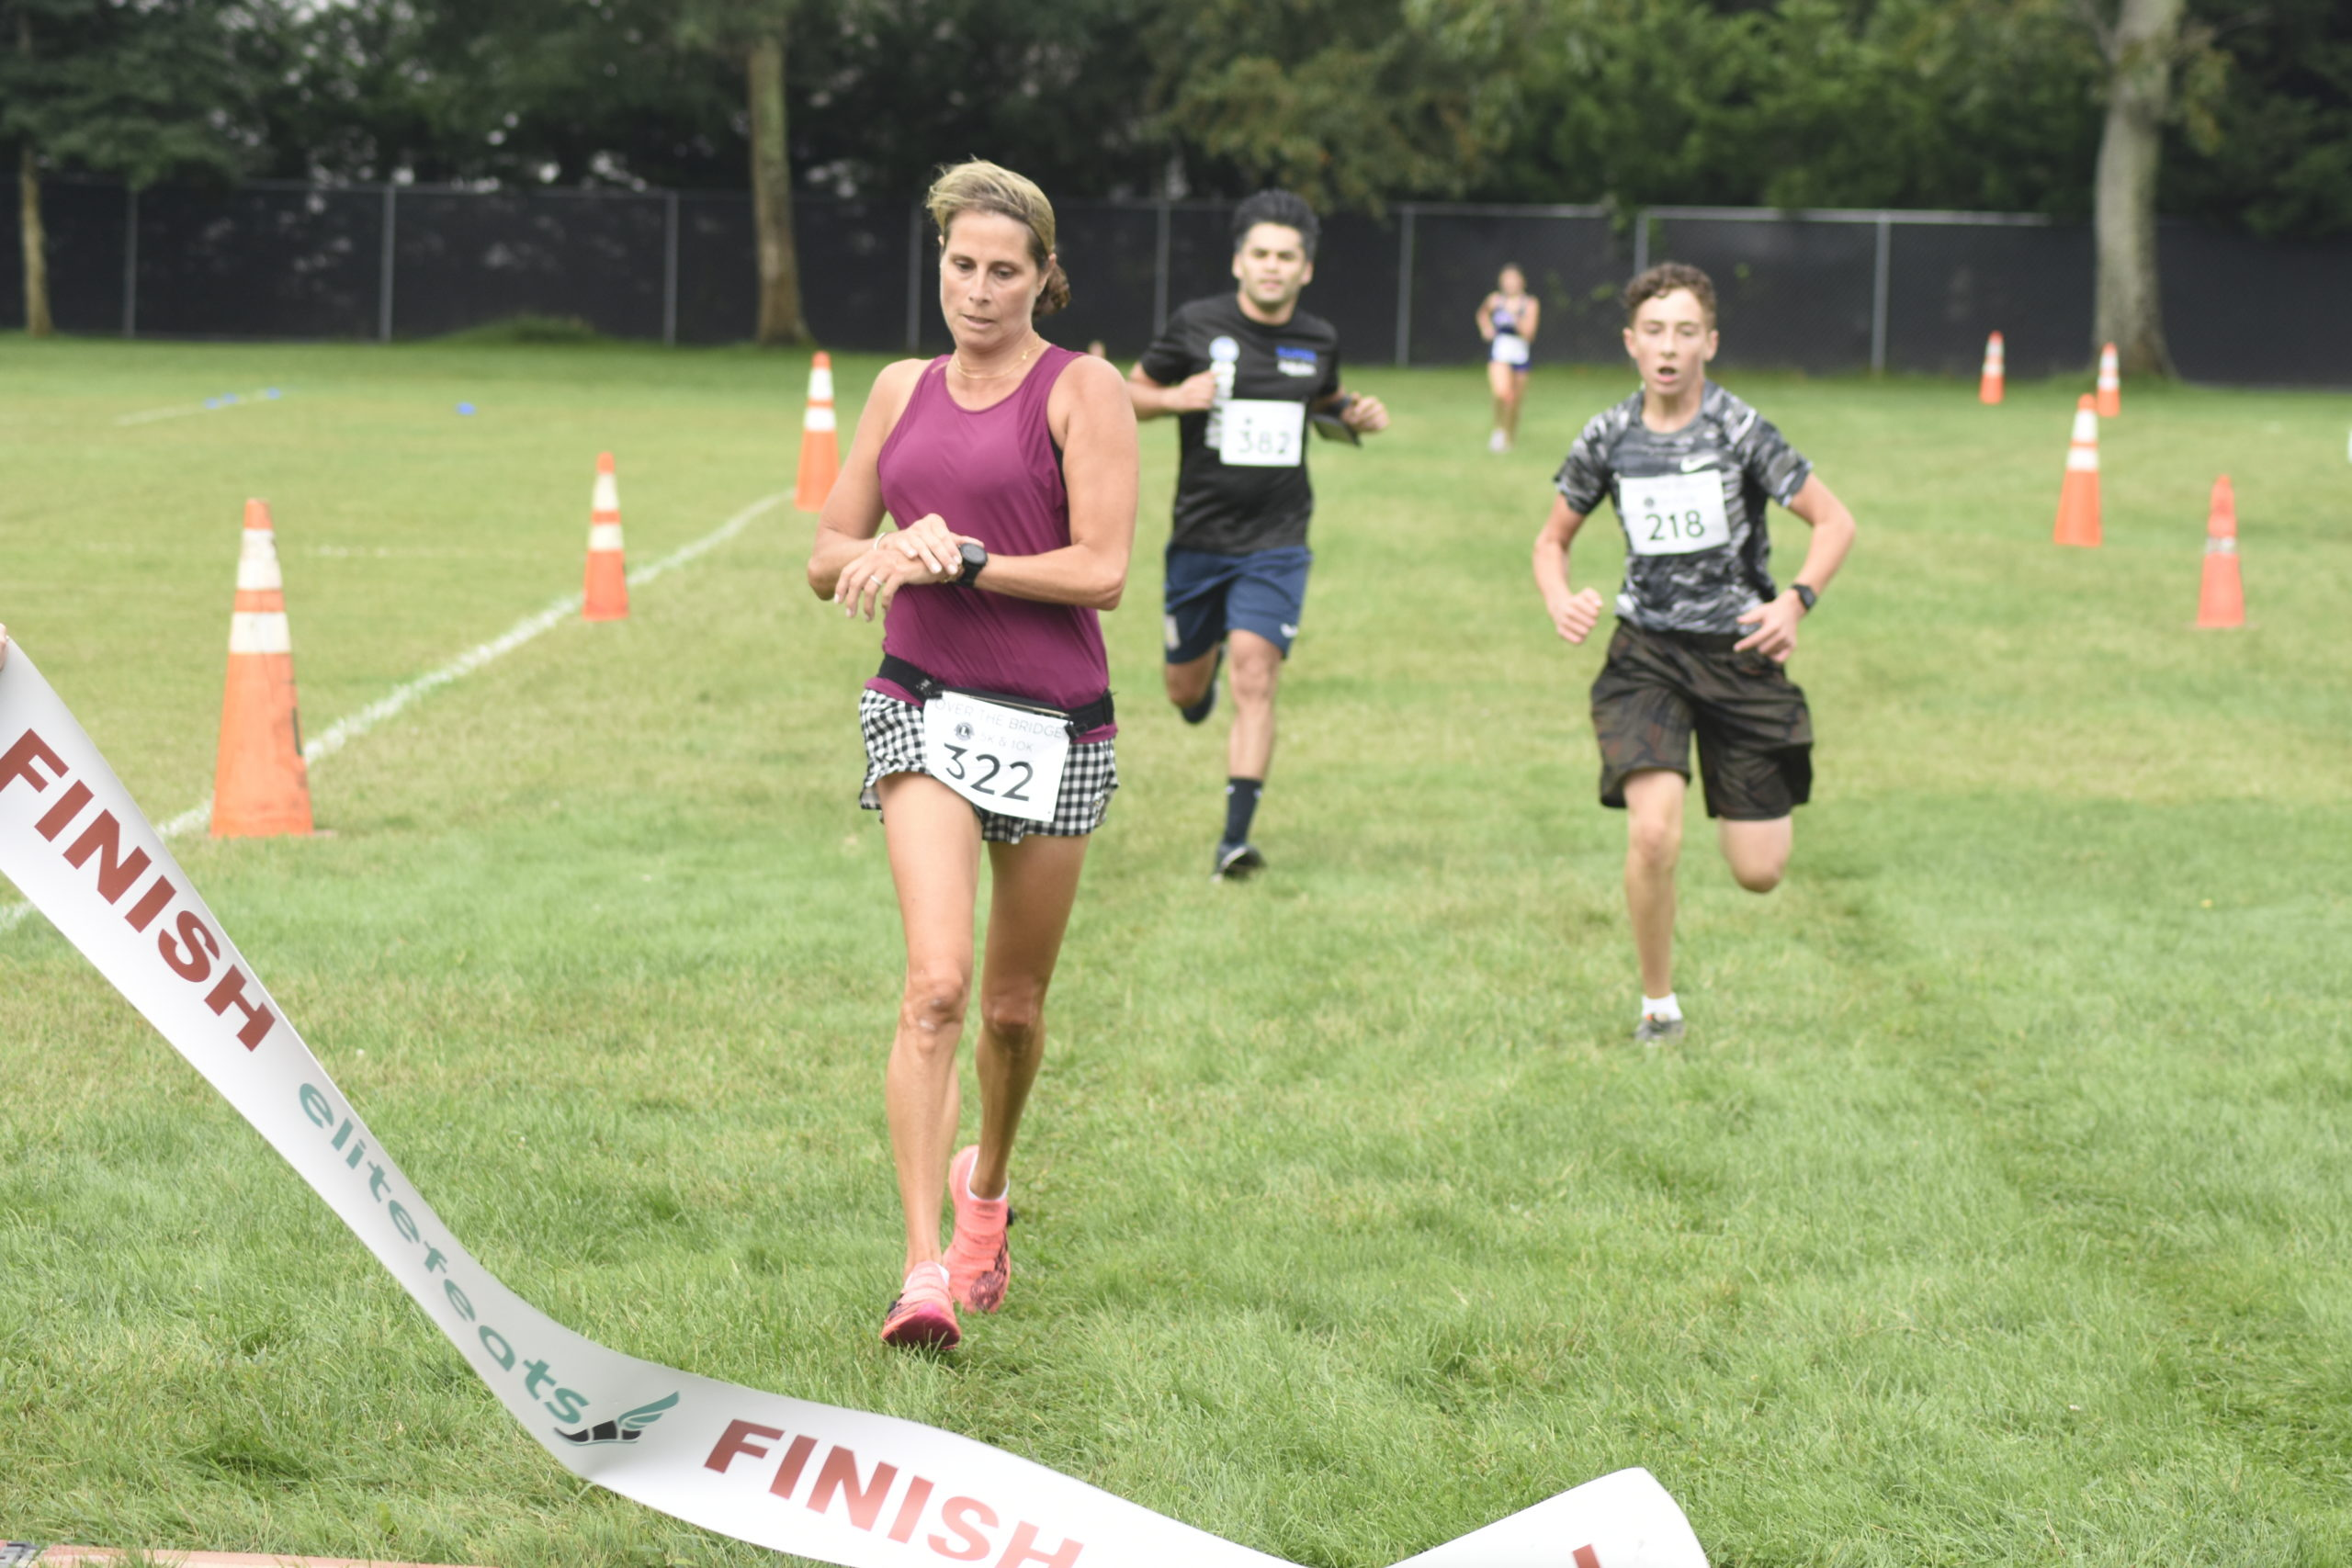 Julie Tucker of Hampton Bays was the female champion of the 5K.